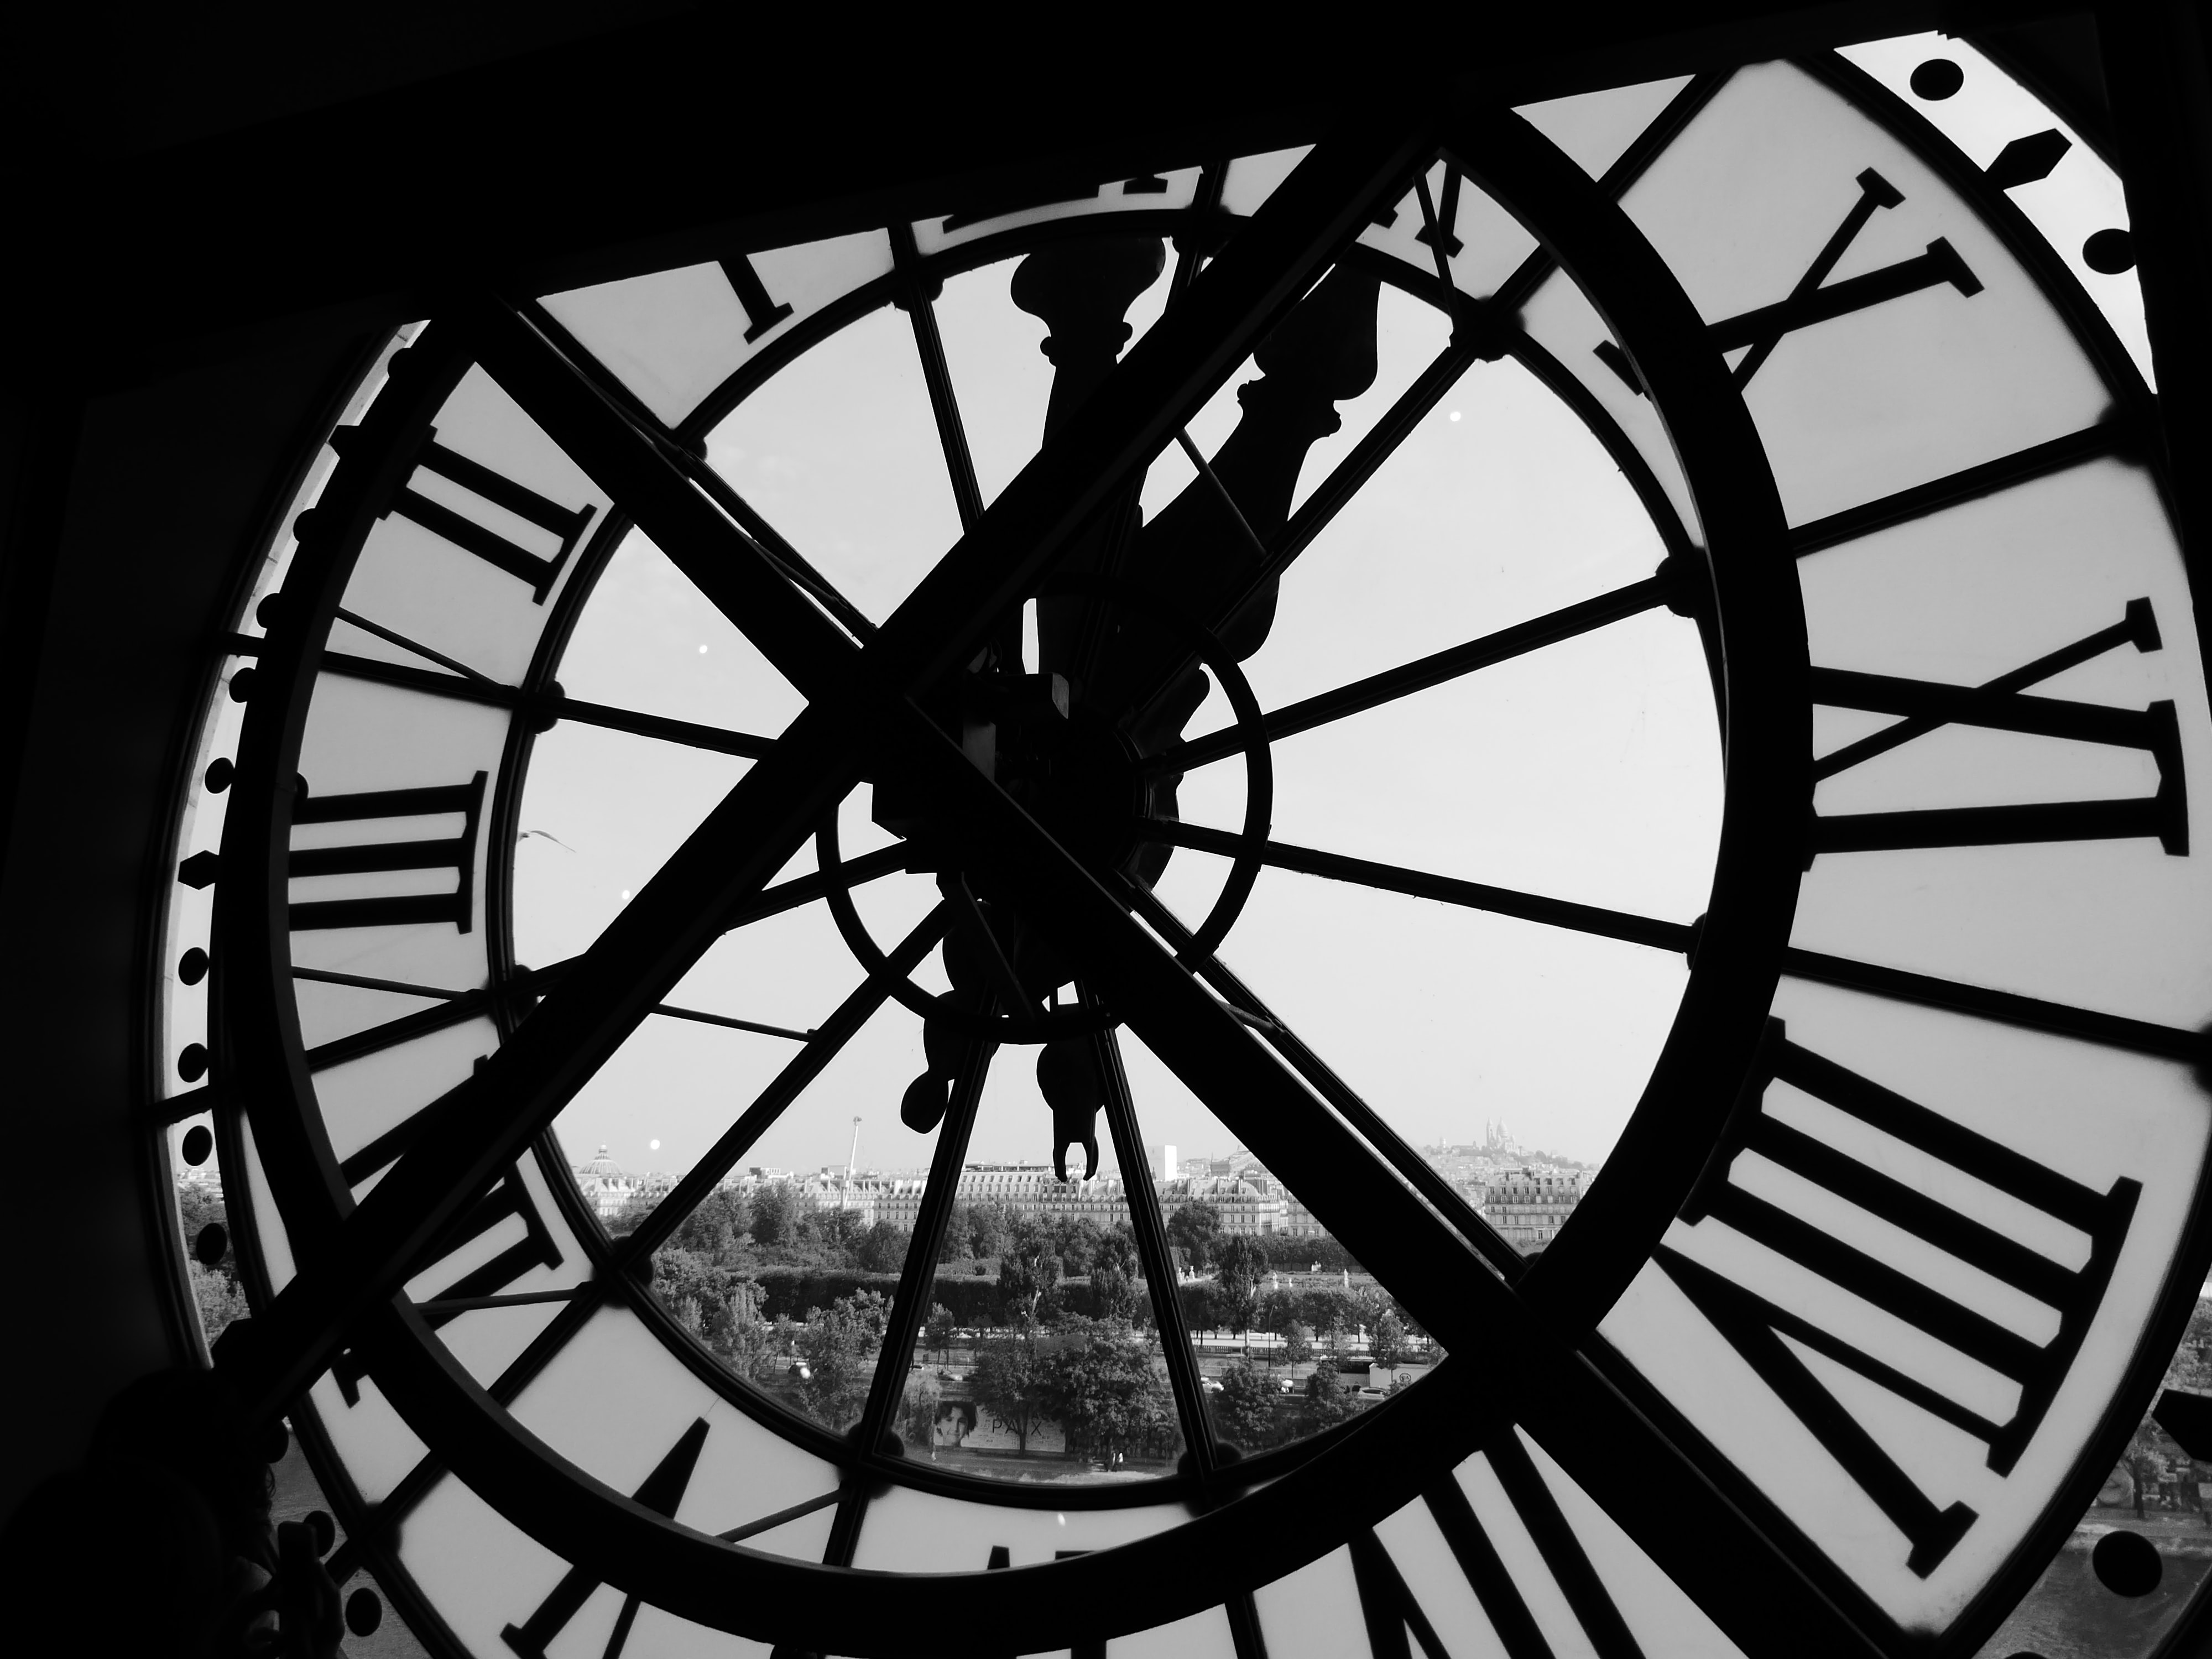 Time time stories